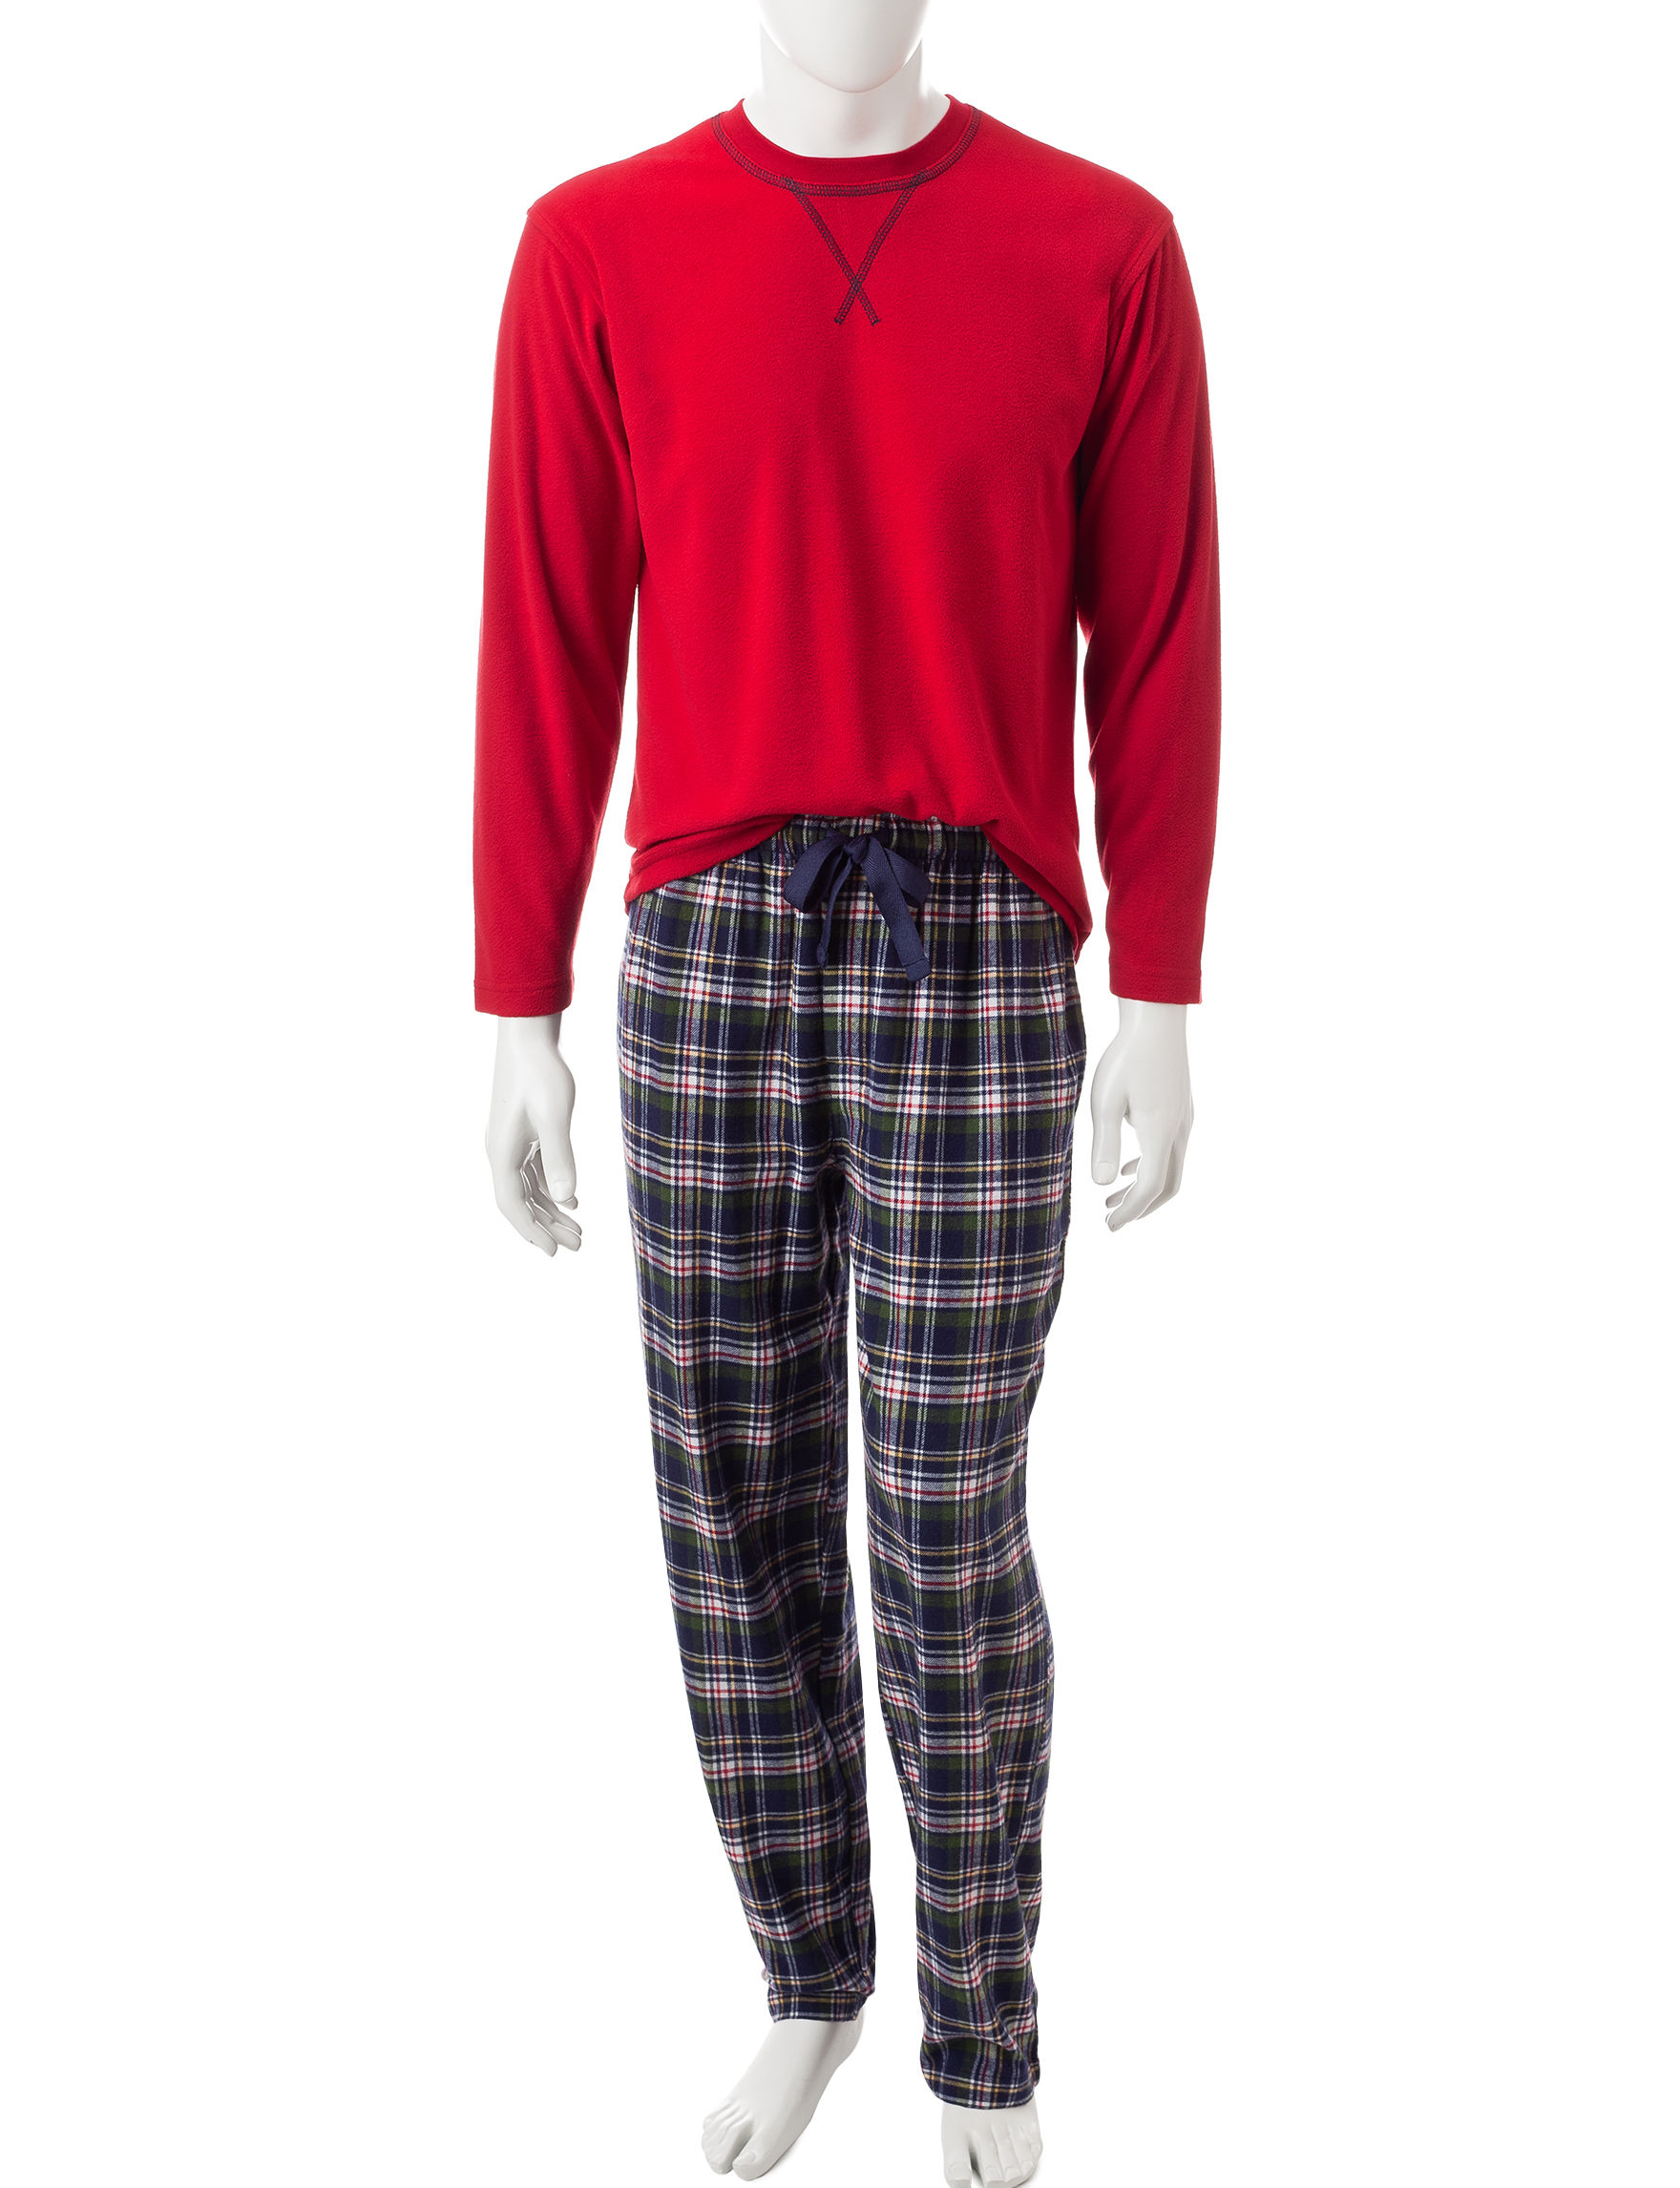 Izod Red Pajama Sets